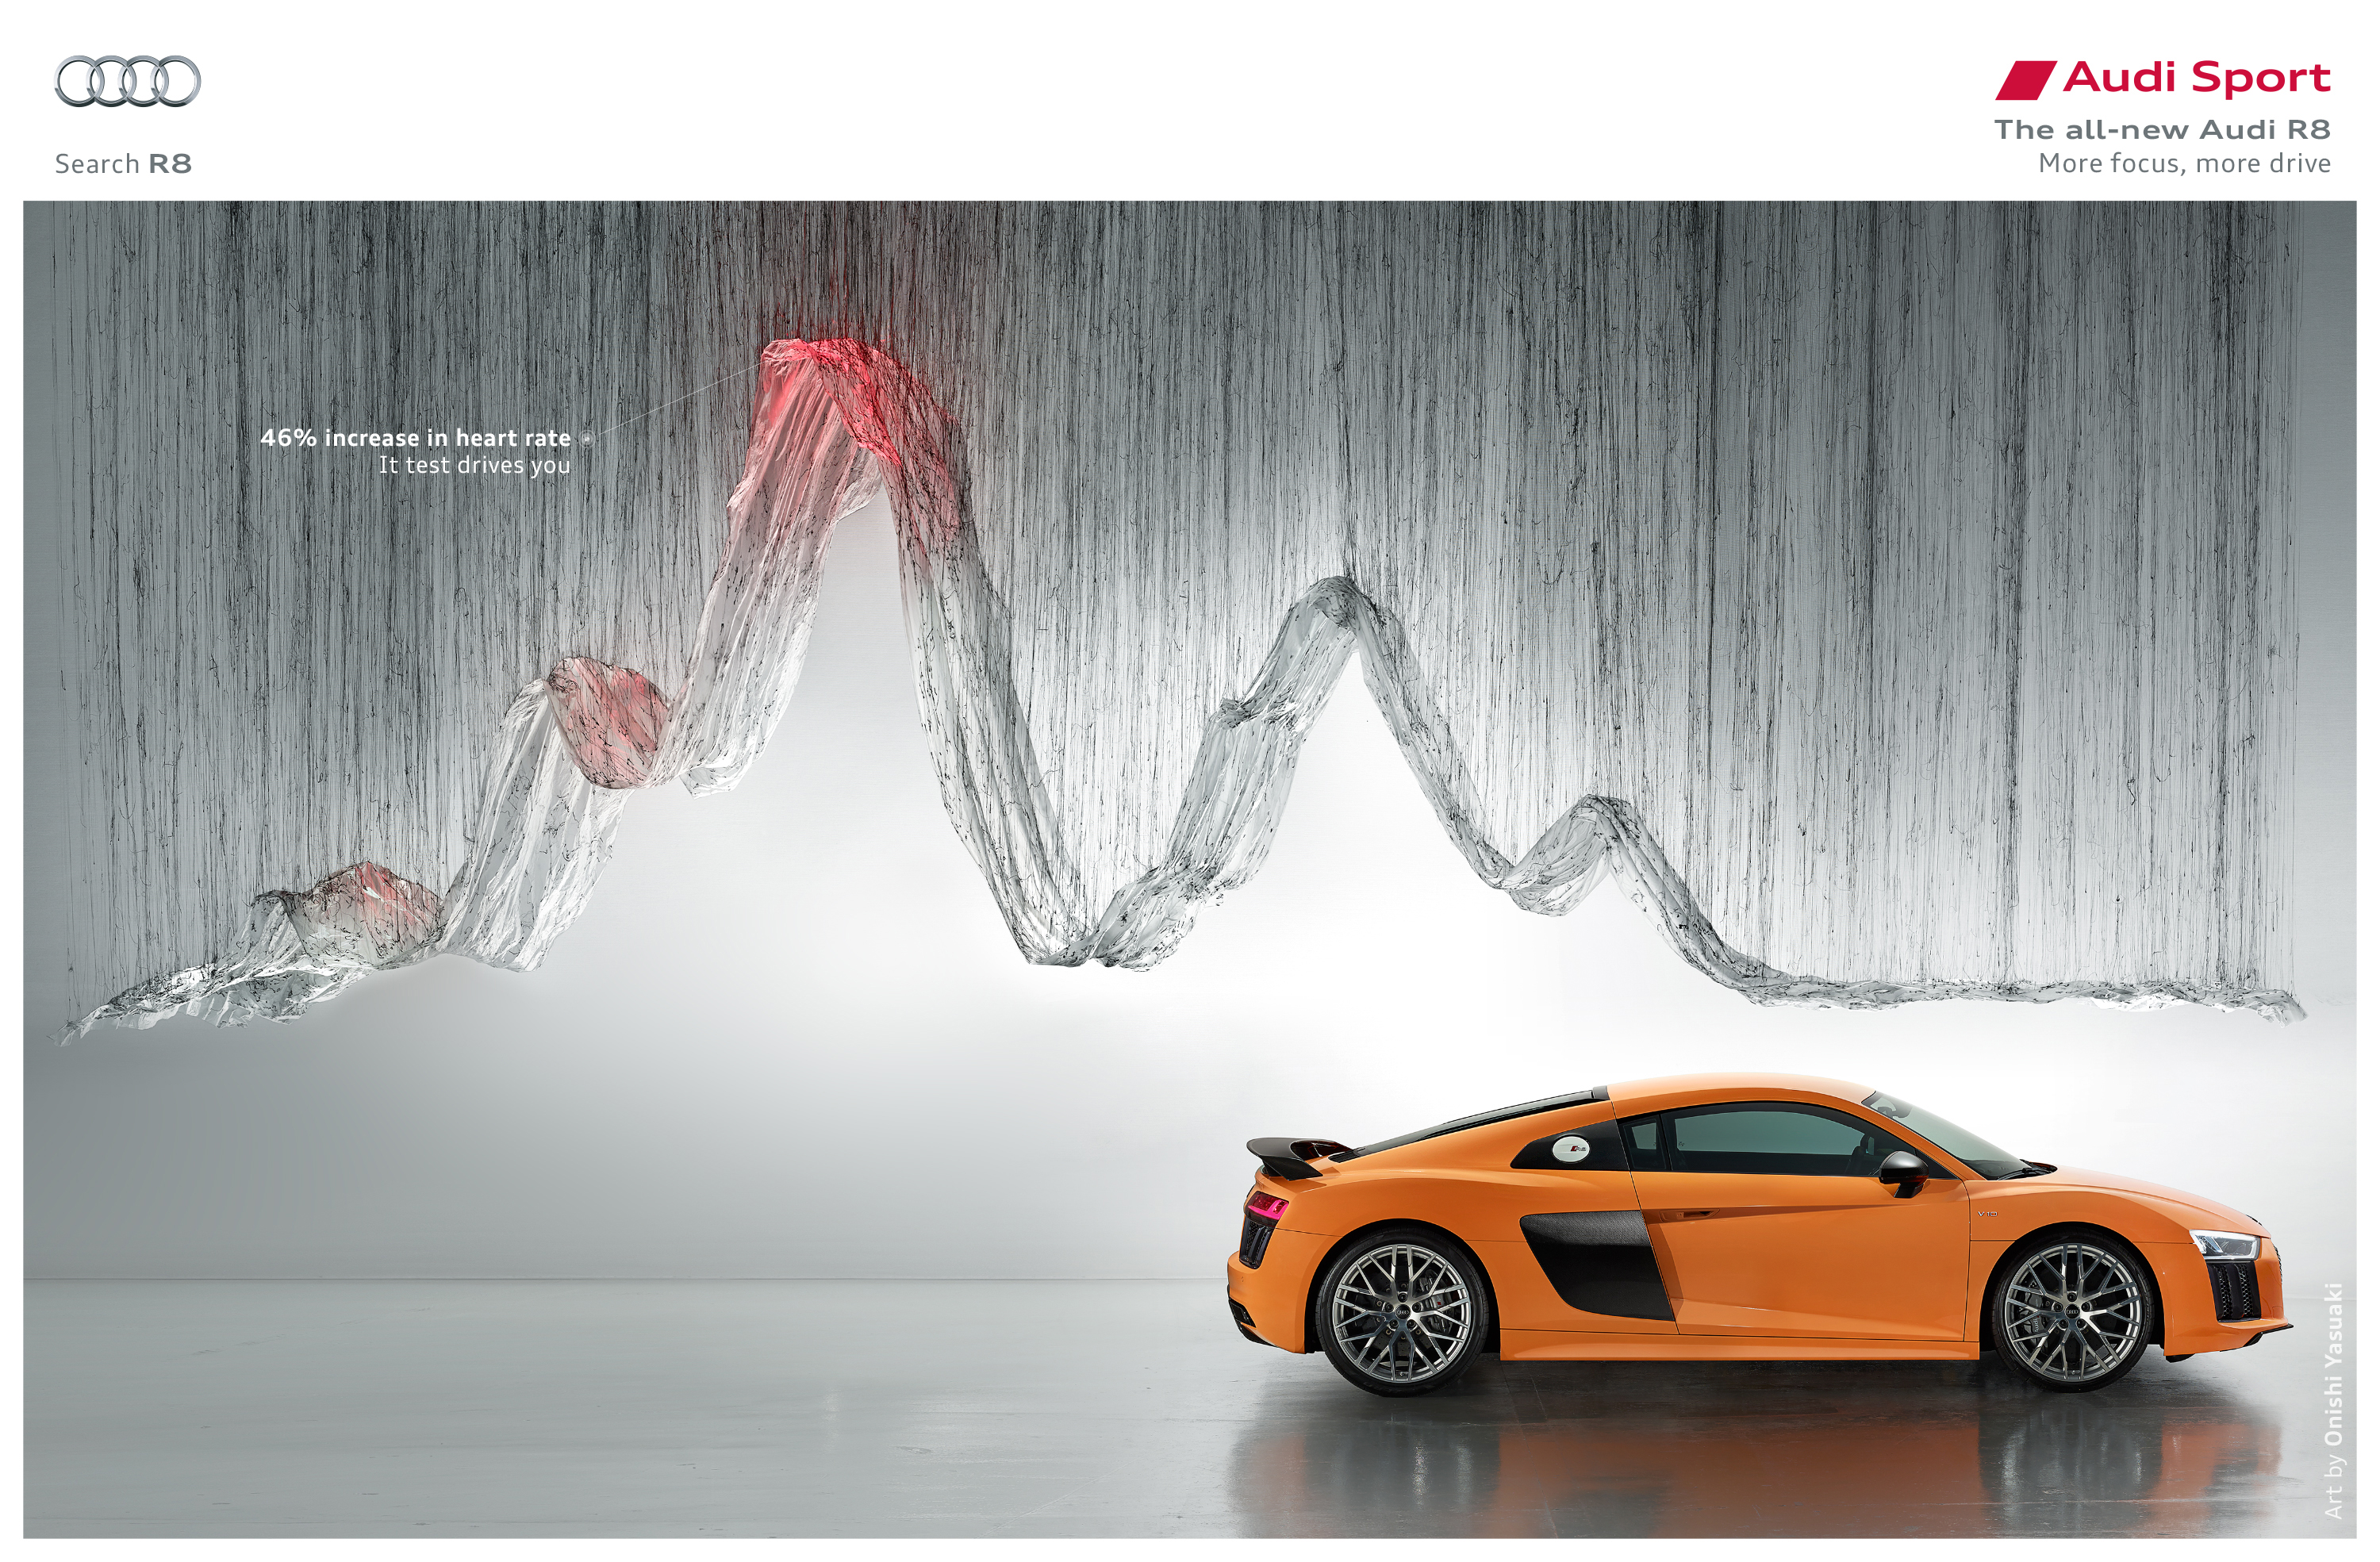 Audi R8 Test Drives You - The Inspiration Room